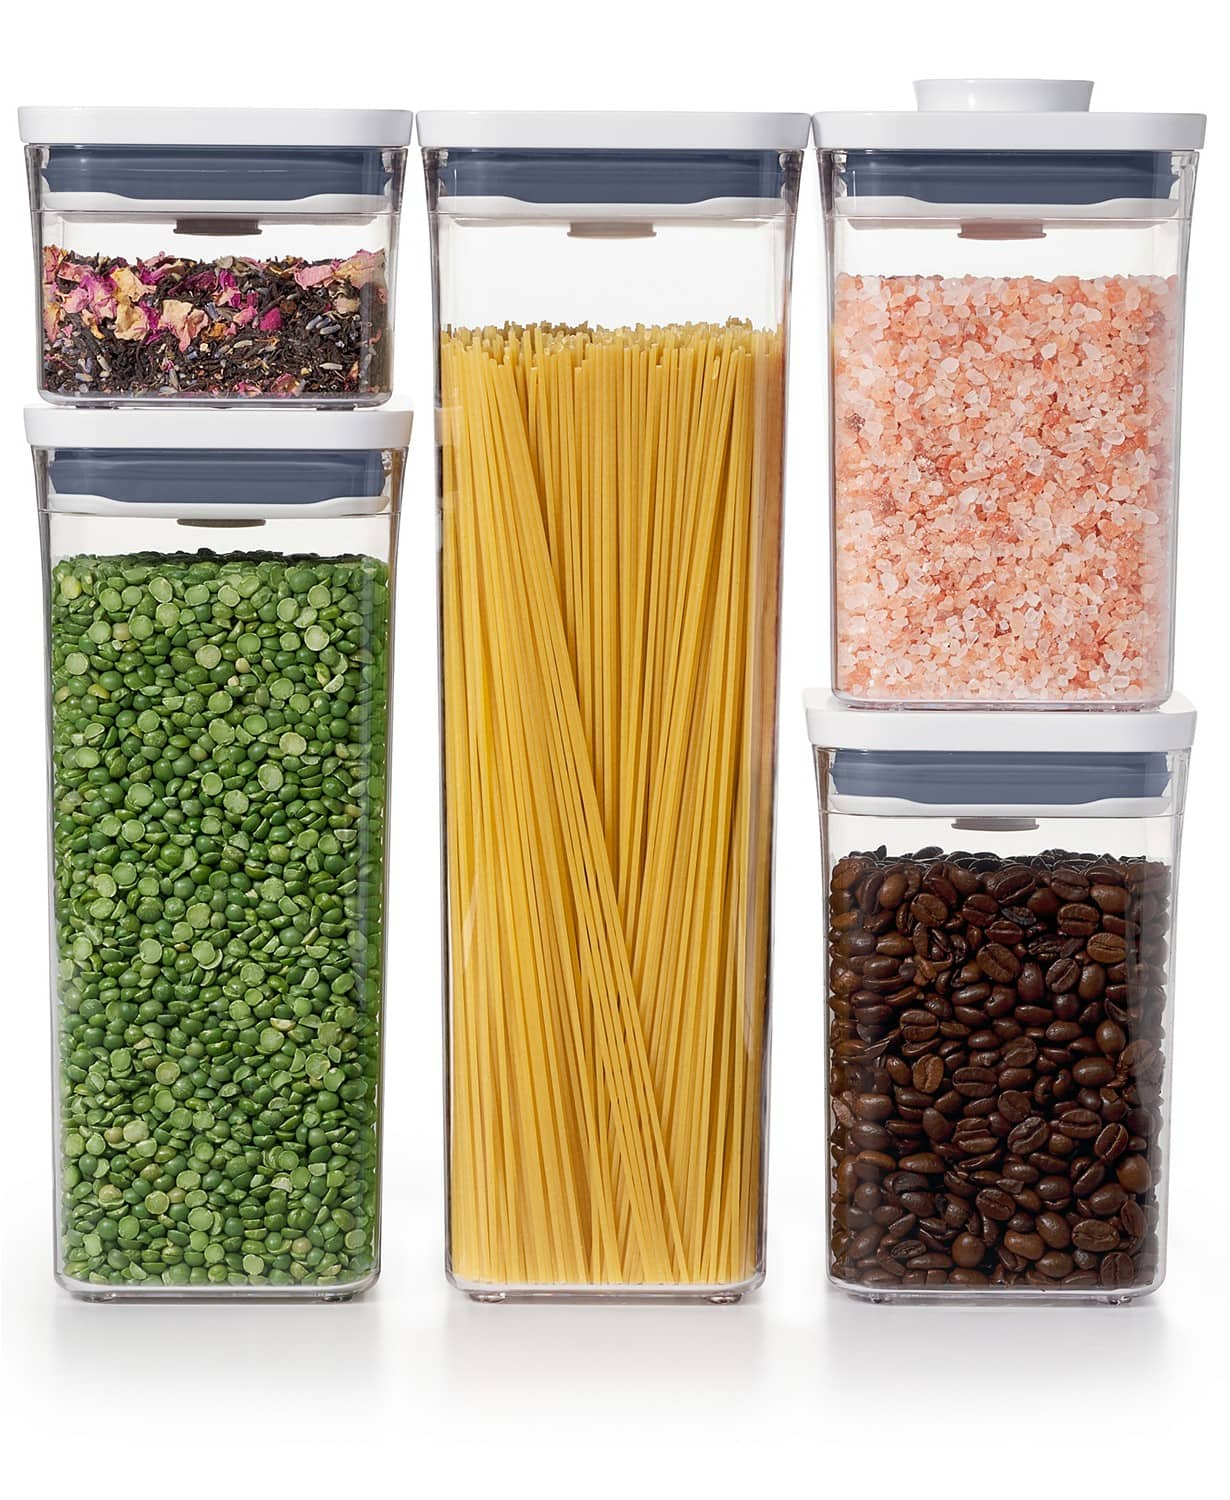 5-Piece OXO Pop Food Storage Container Set $29.99 + Free Shipping at Macy's *Just Updated, Price Drop*